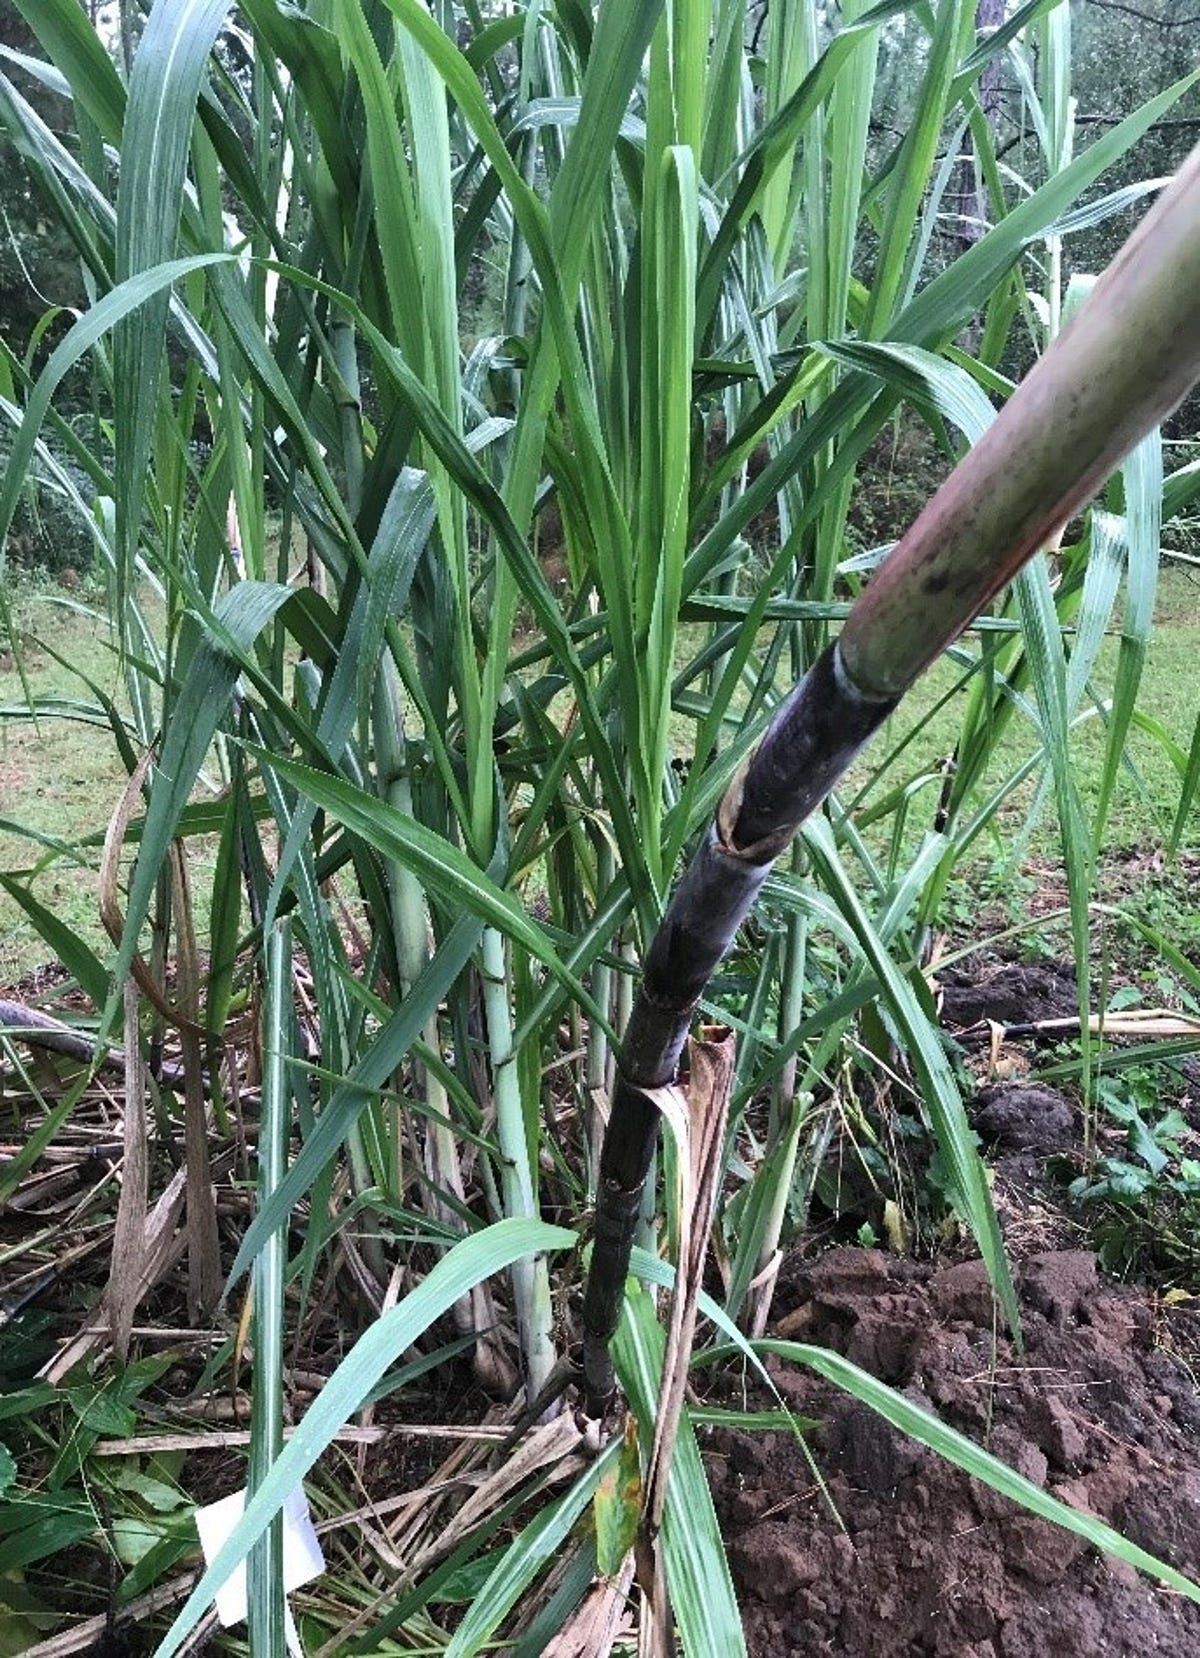 Sugar cane grows fast in humid Florida